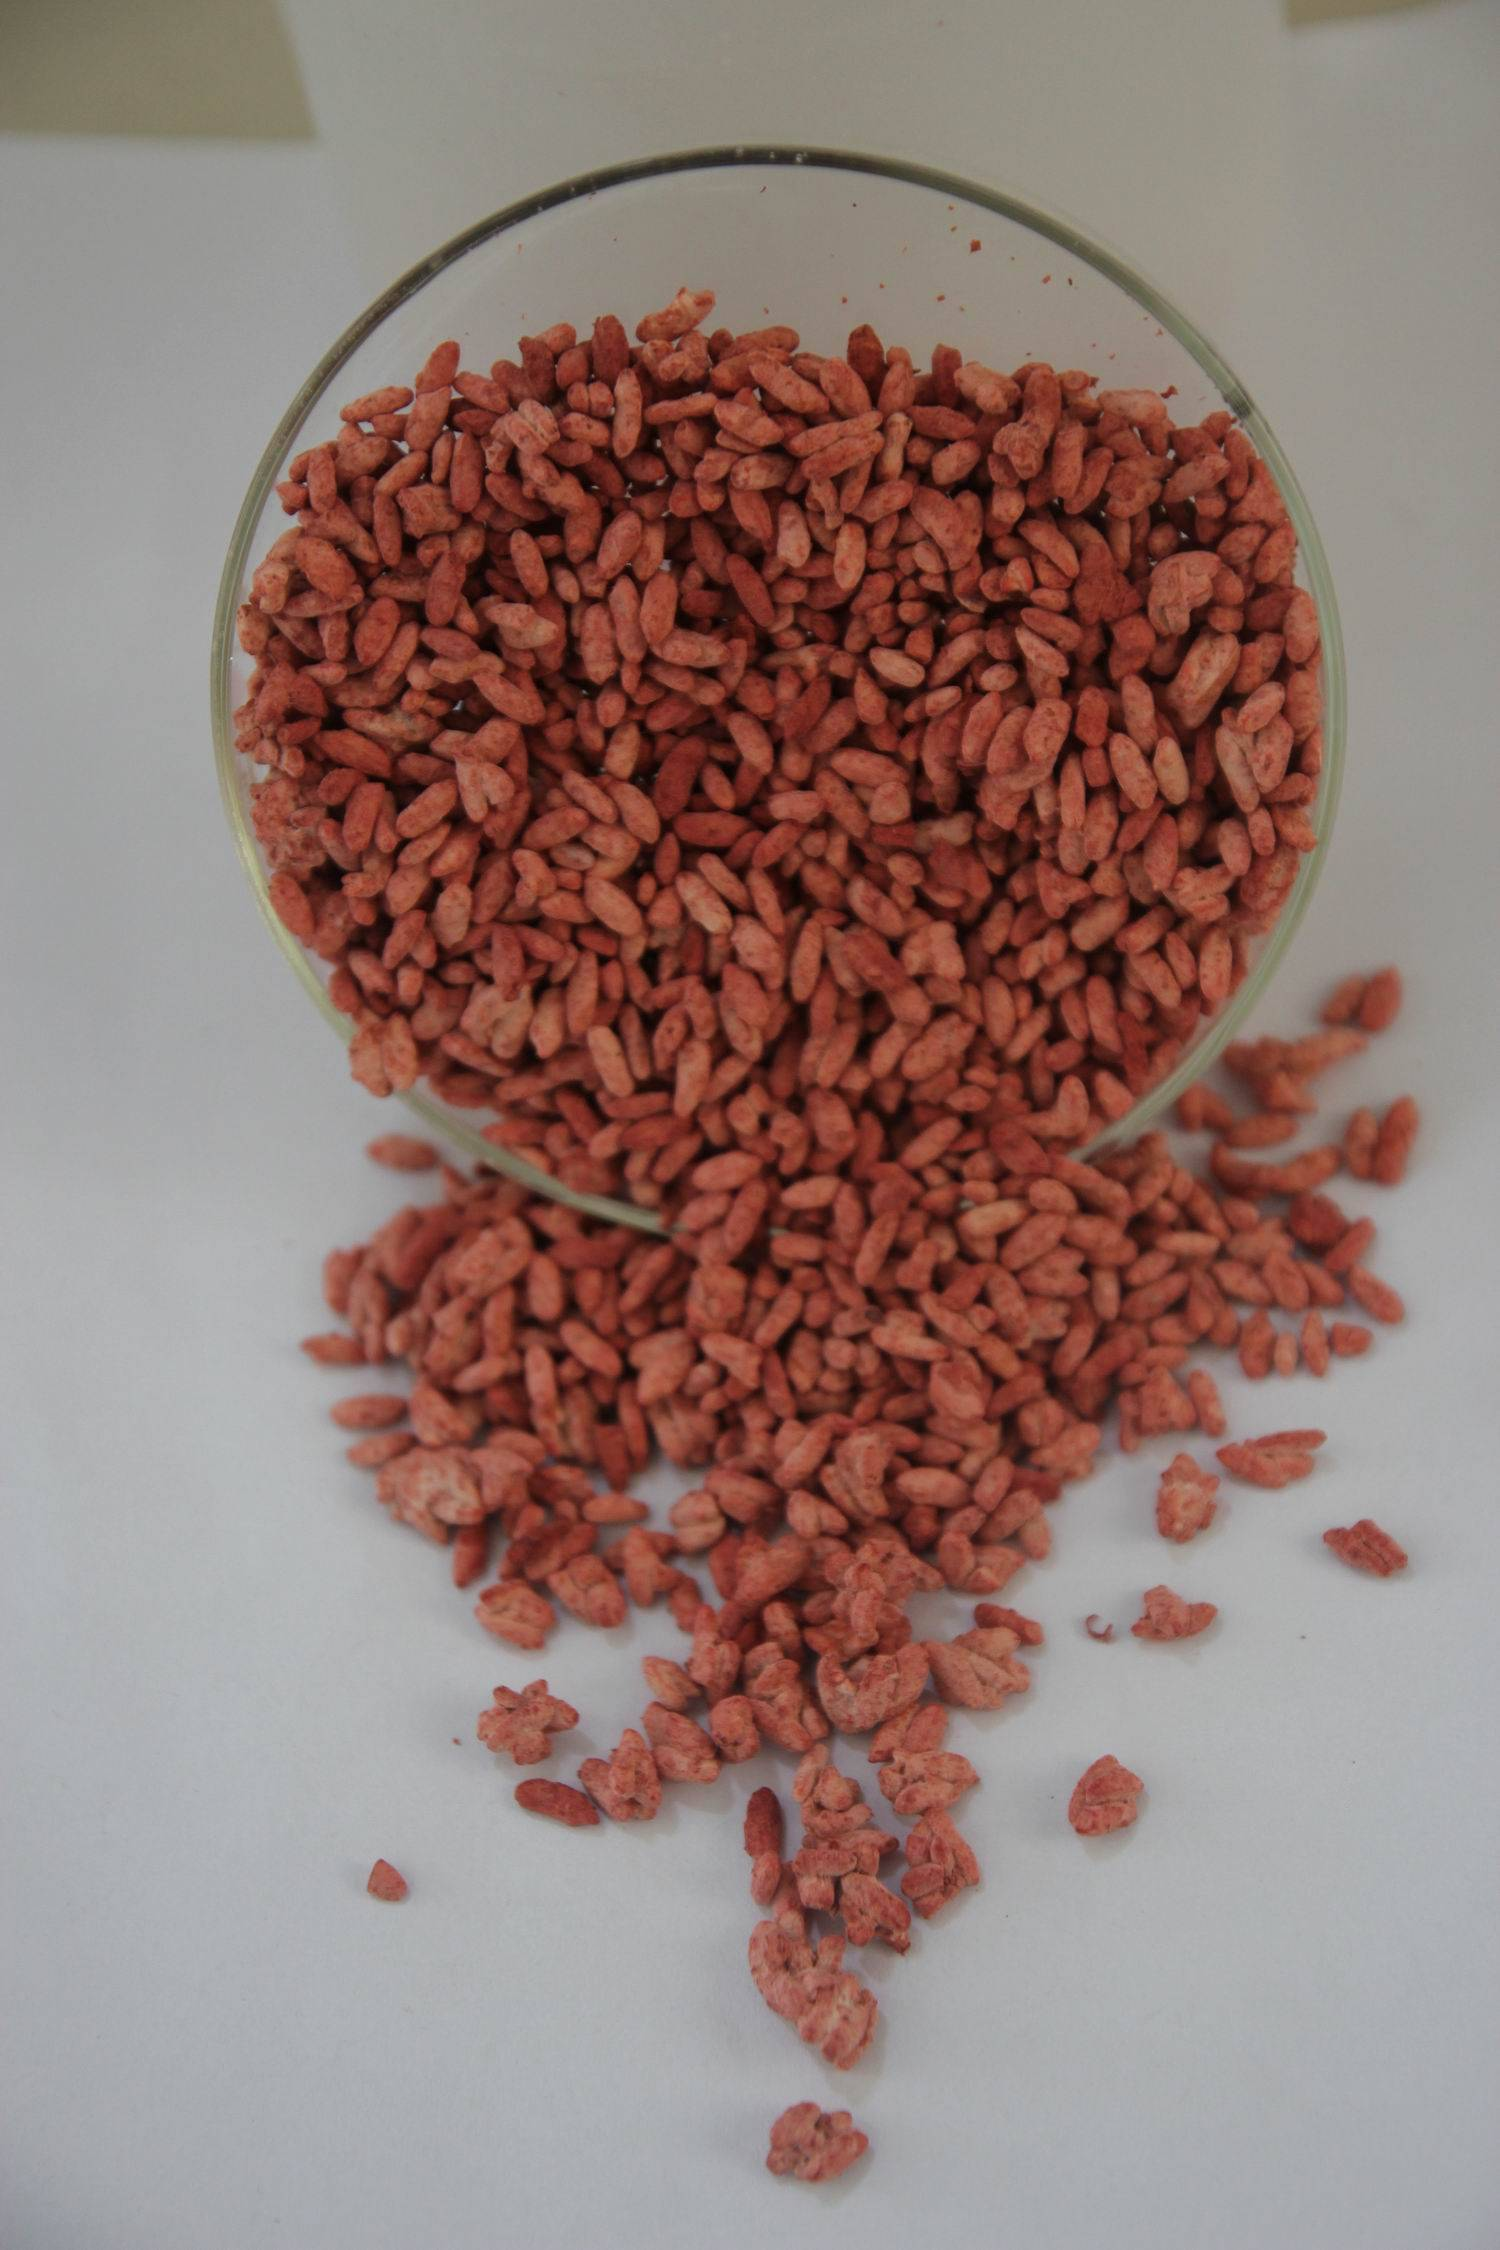 LOWER CHOLESTEROL Functional Red Yeast Rice Powder Manufacturer